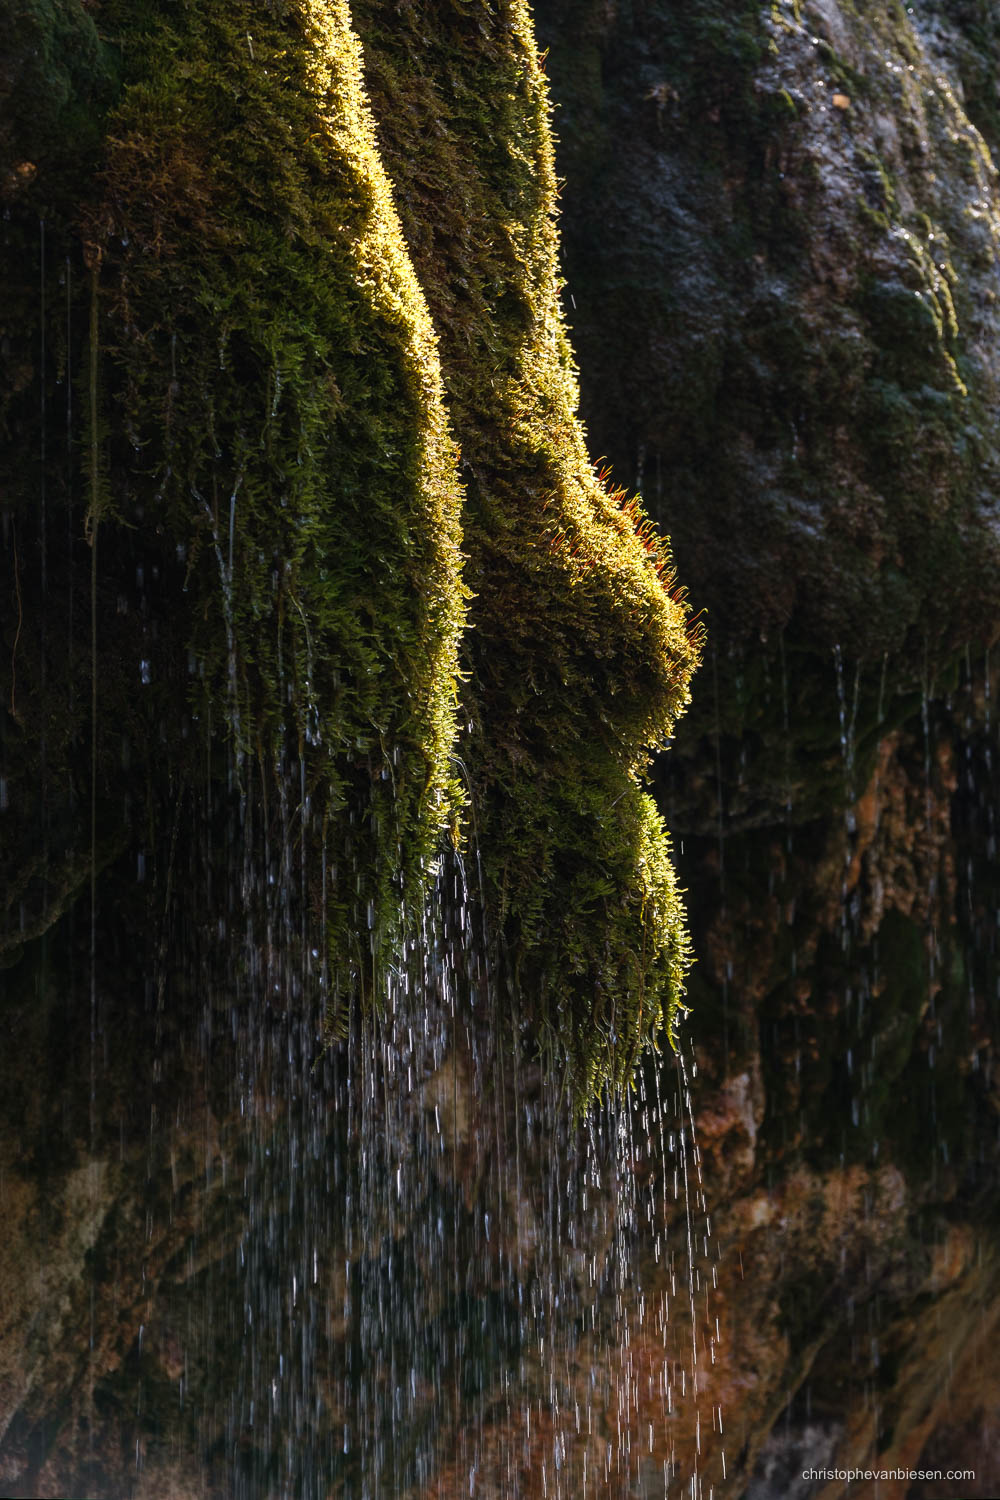 Visit the Mullerthal - Luxembourg - Flowing water of the Kalktuffquelle in Luxembourg's Mullerthal region - Kissed by Light